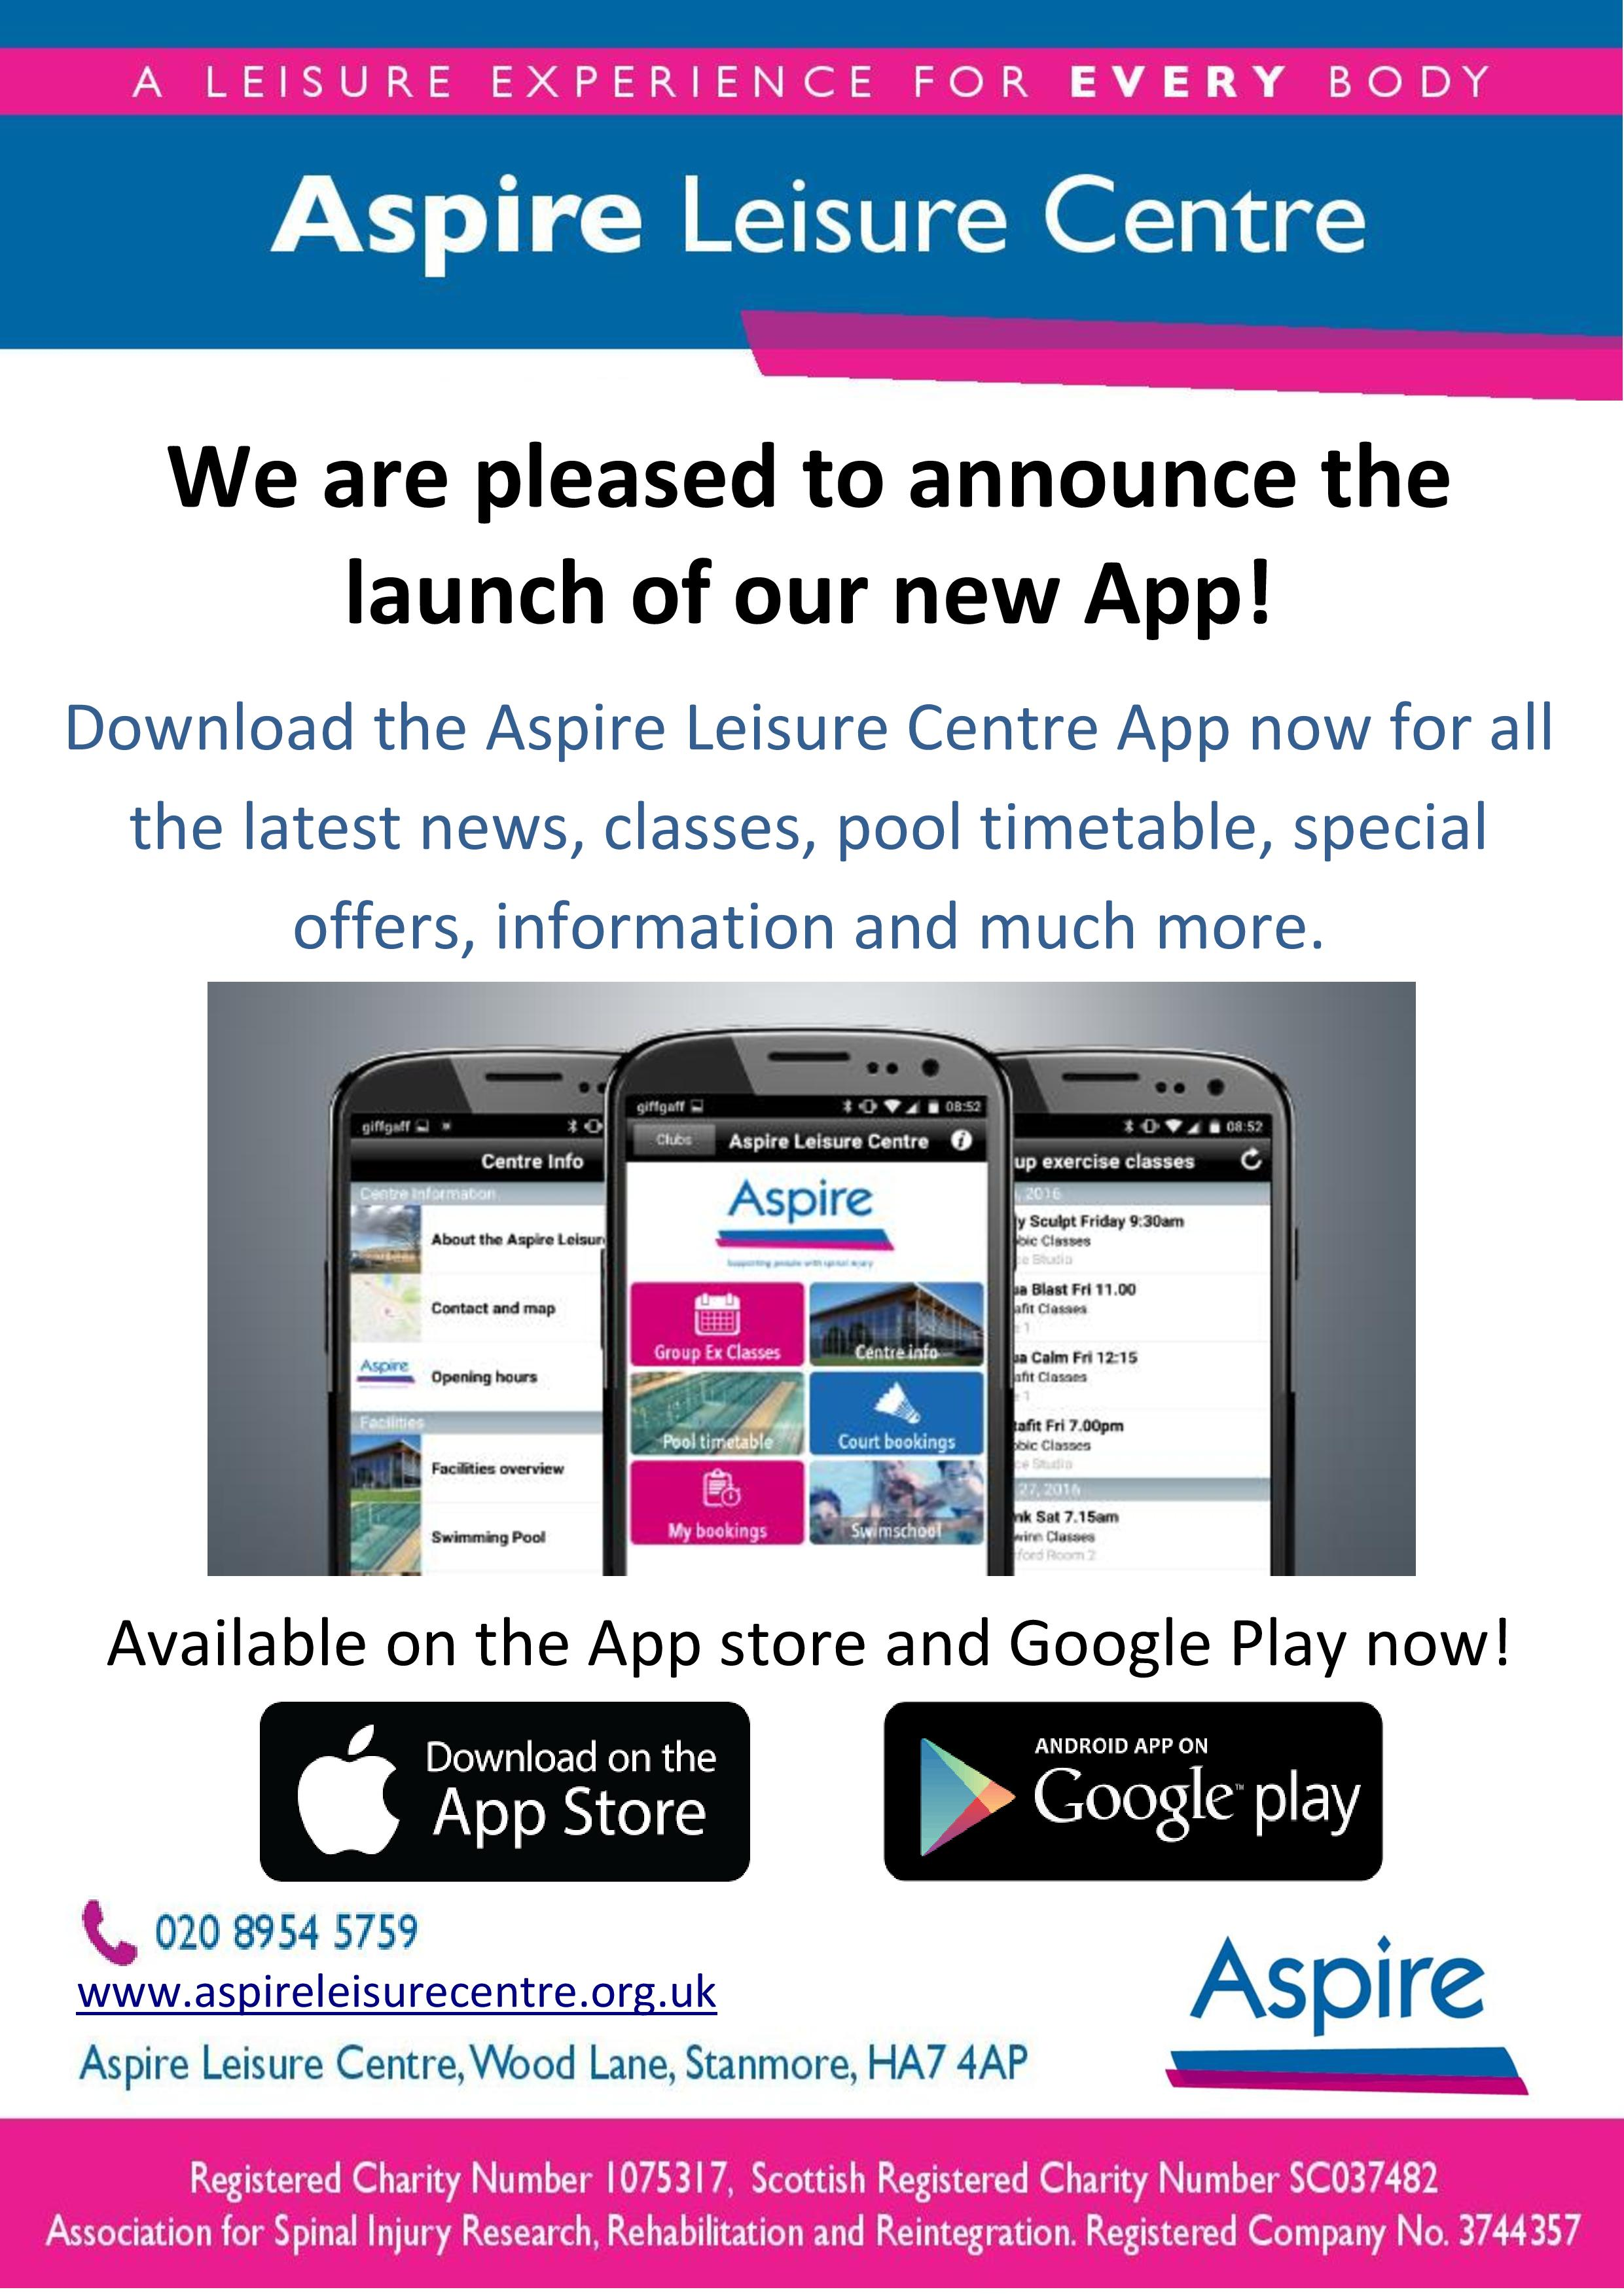 Poster about new Aspire Leisure Centre app